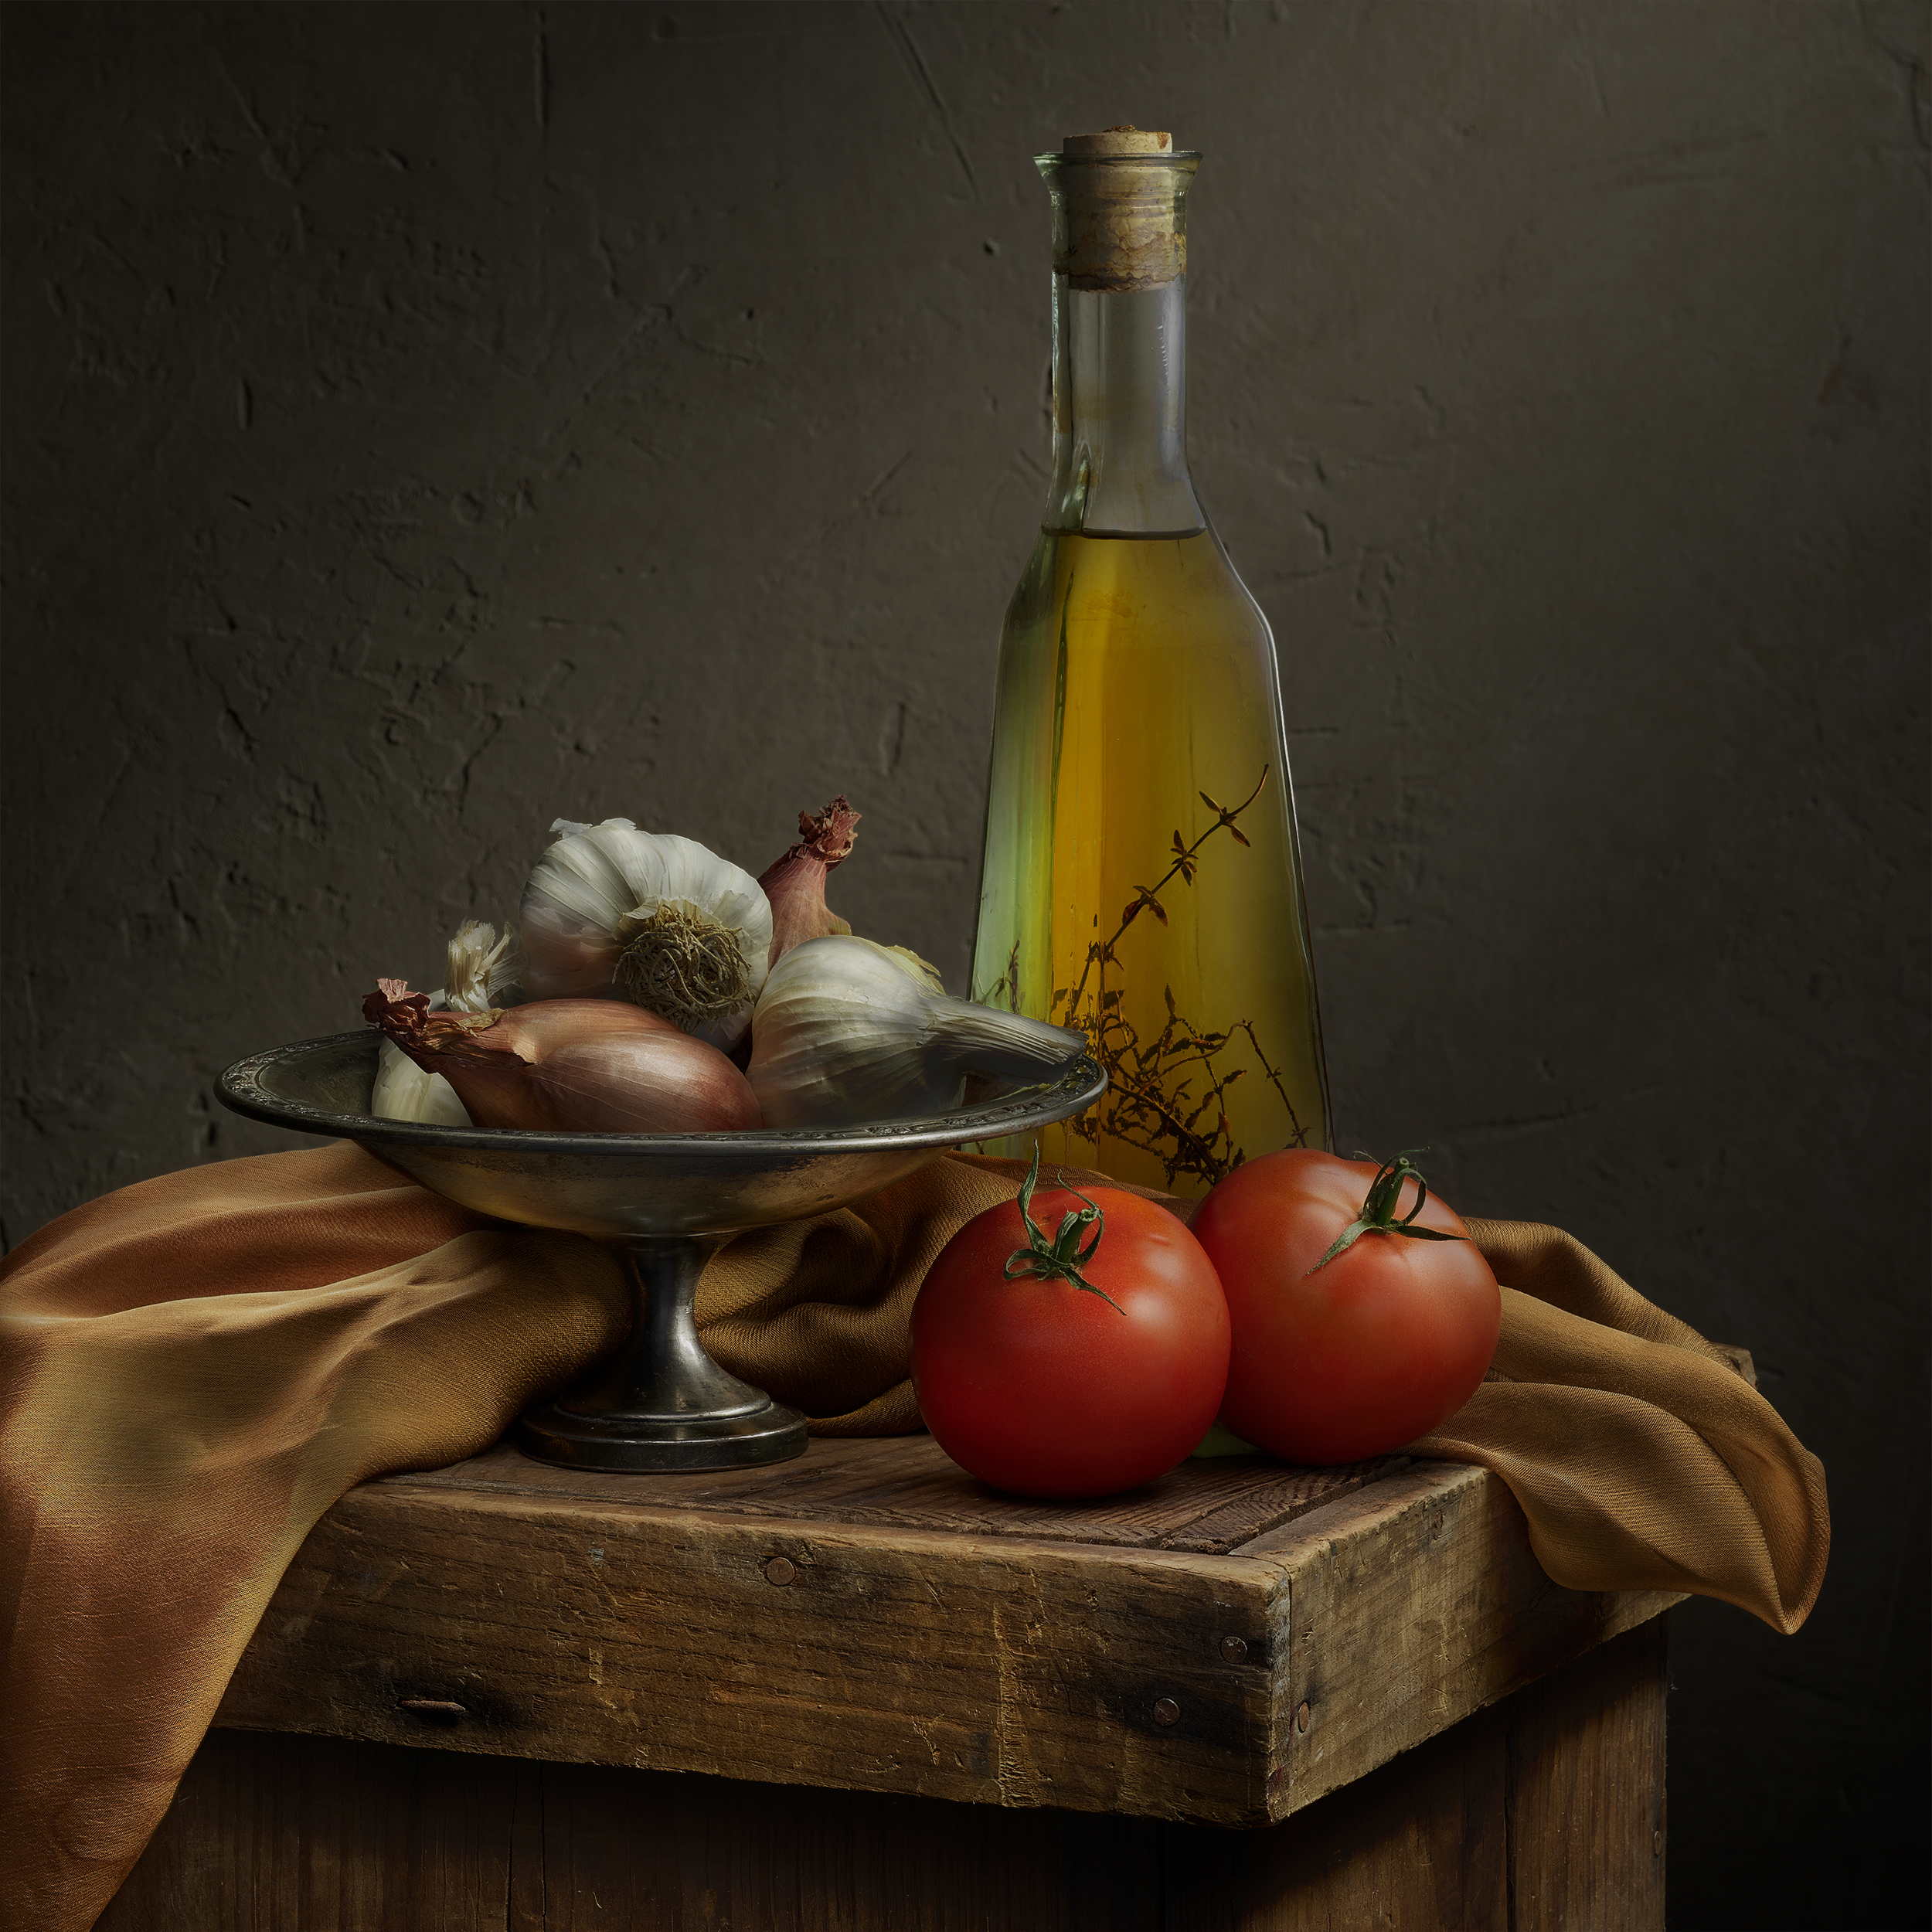 More of a traditional still-life (and a work in progress for the post-production. Copyright 2018, Jason Nicholas)